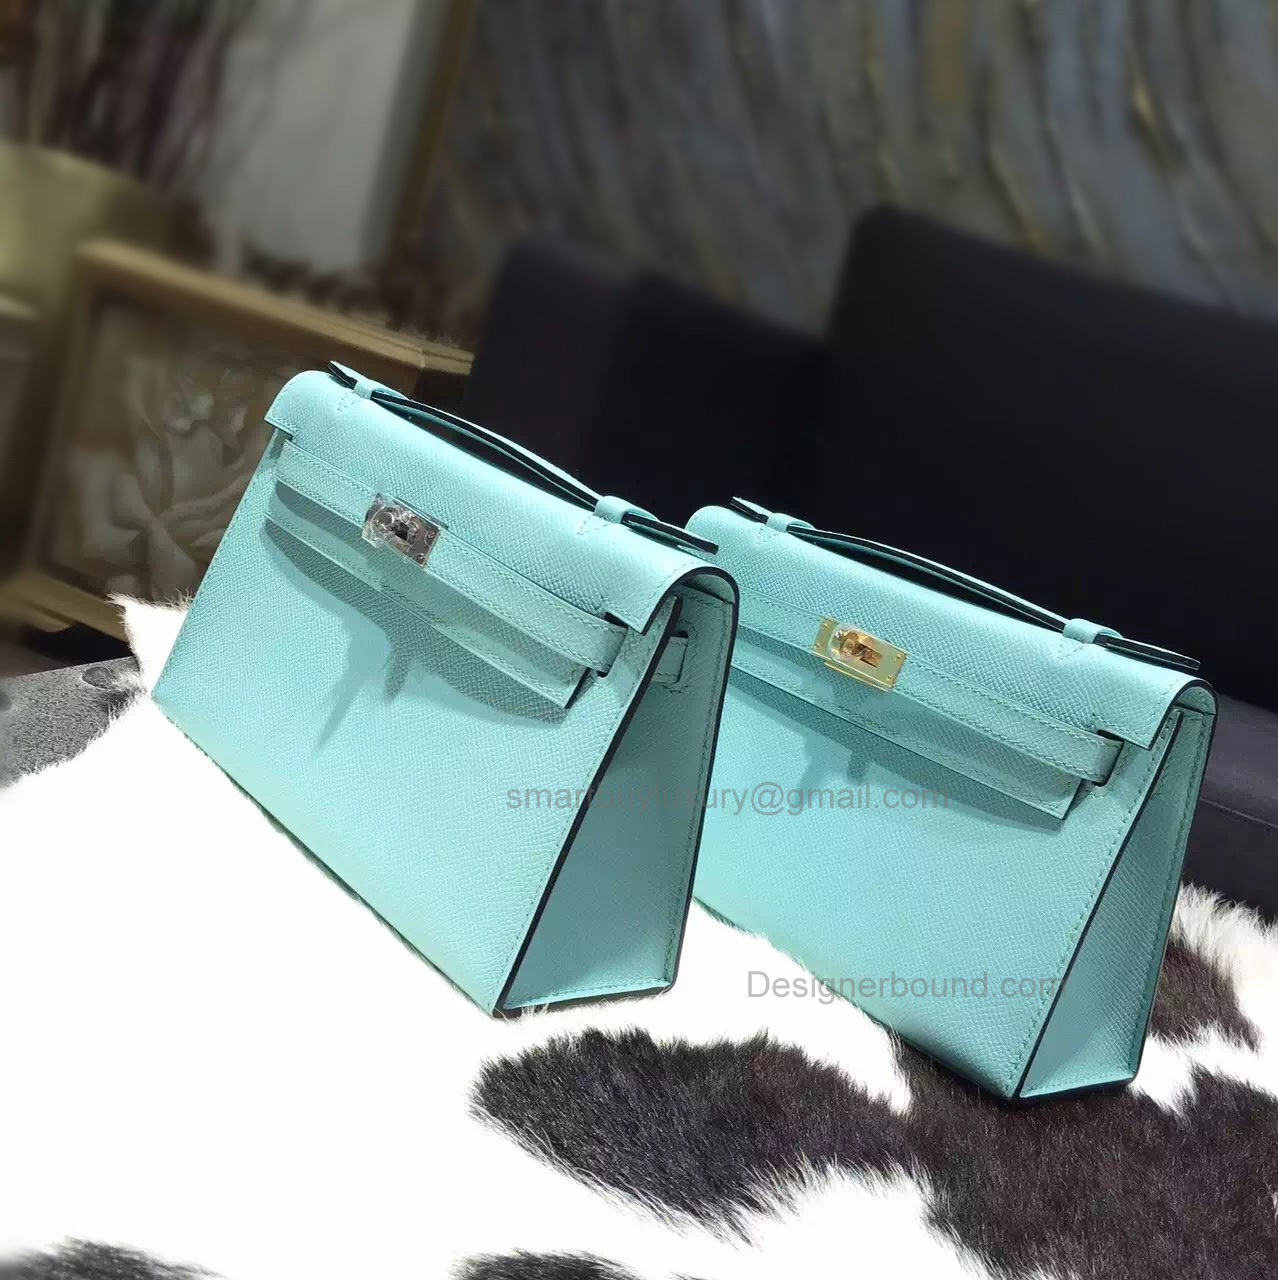 Handmade Hermes Mini Kelly 22 Pochette Bag in 3p Blue Atoll Epsom Calfskin